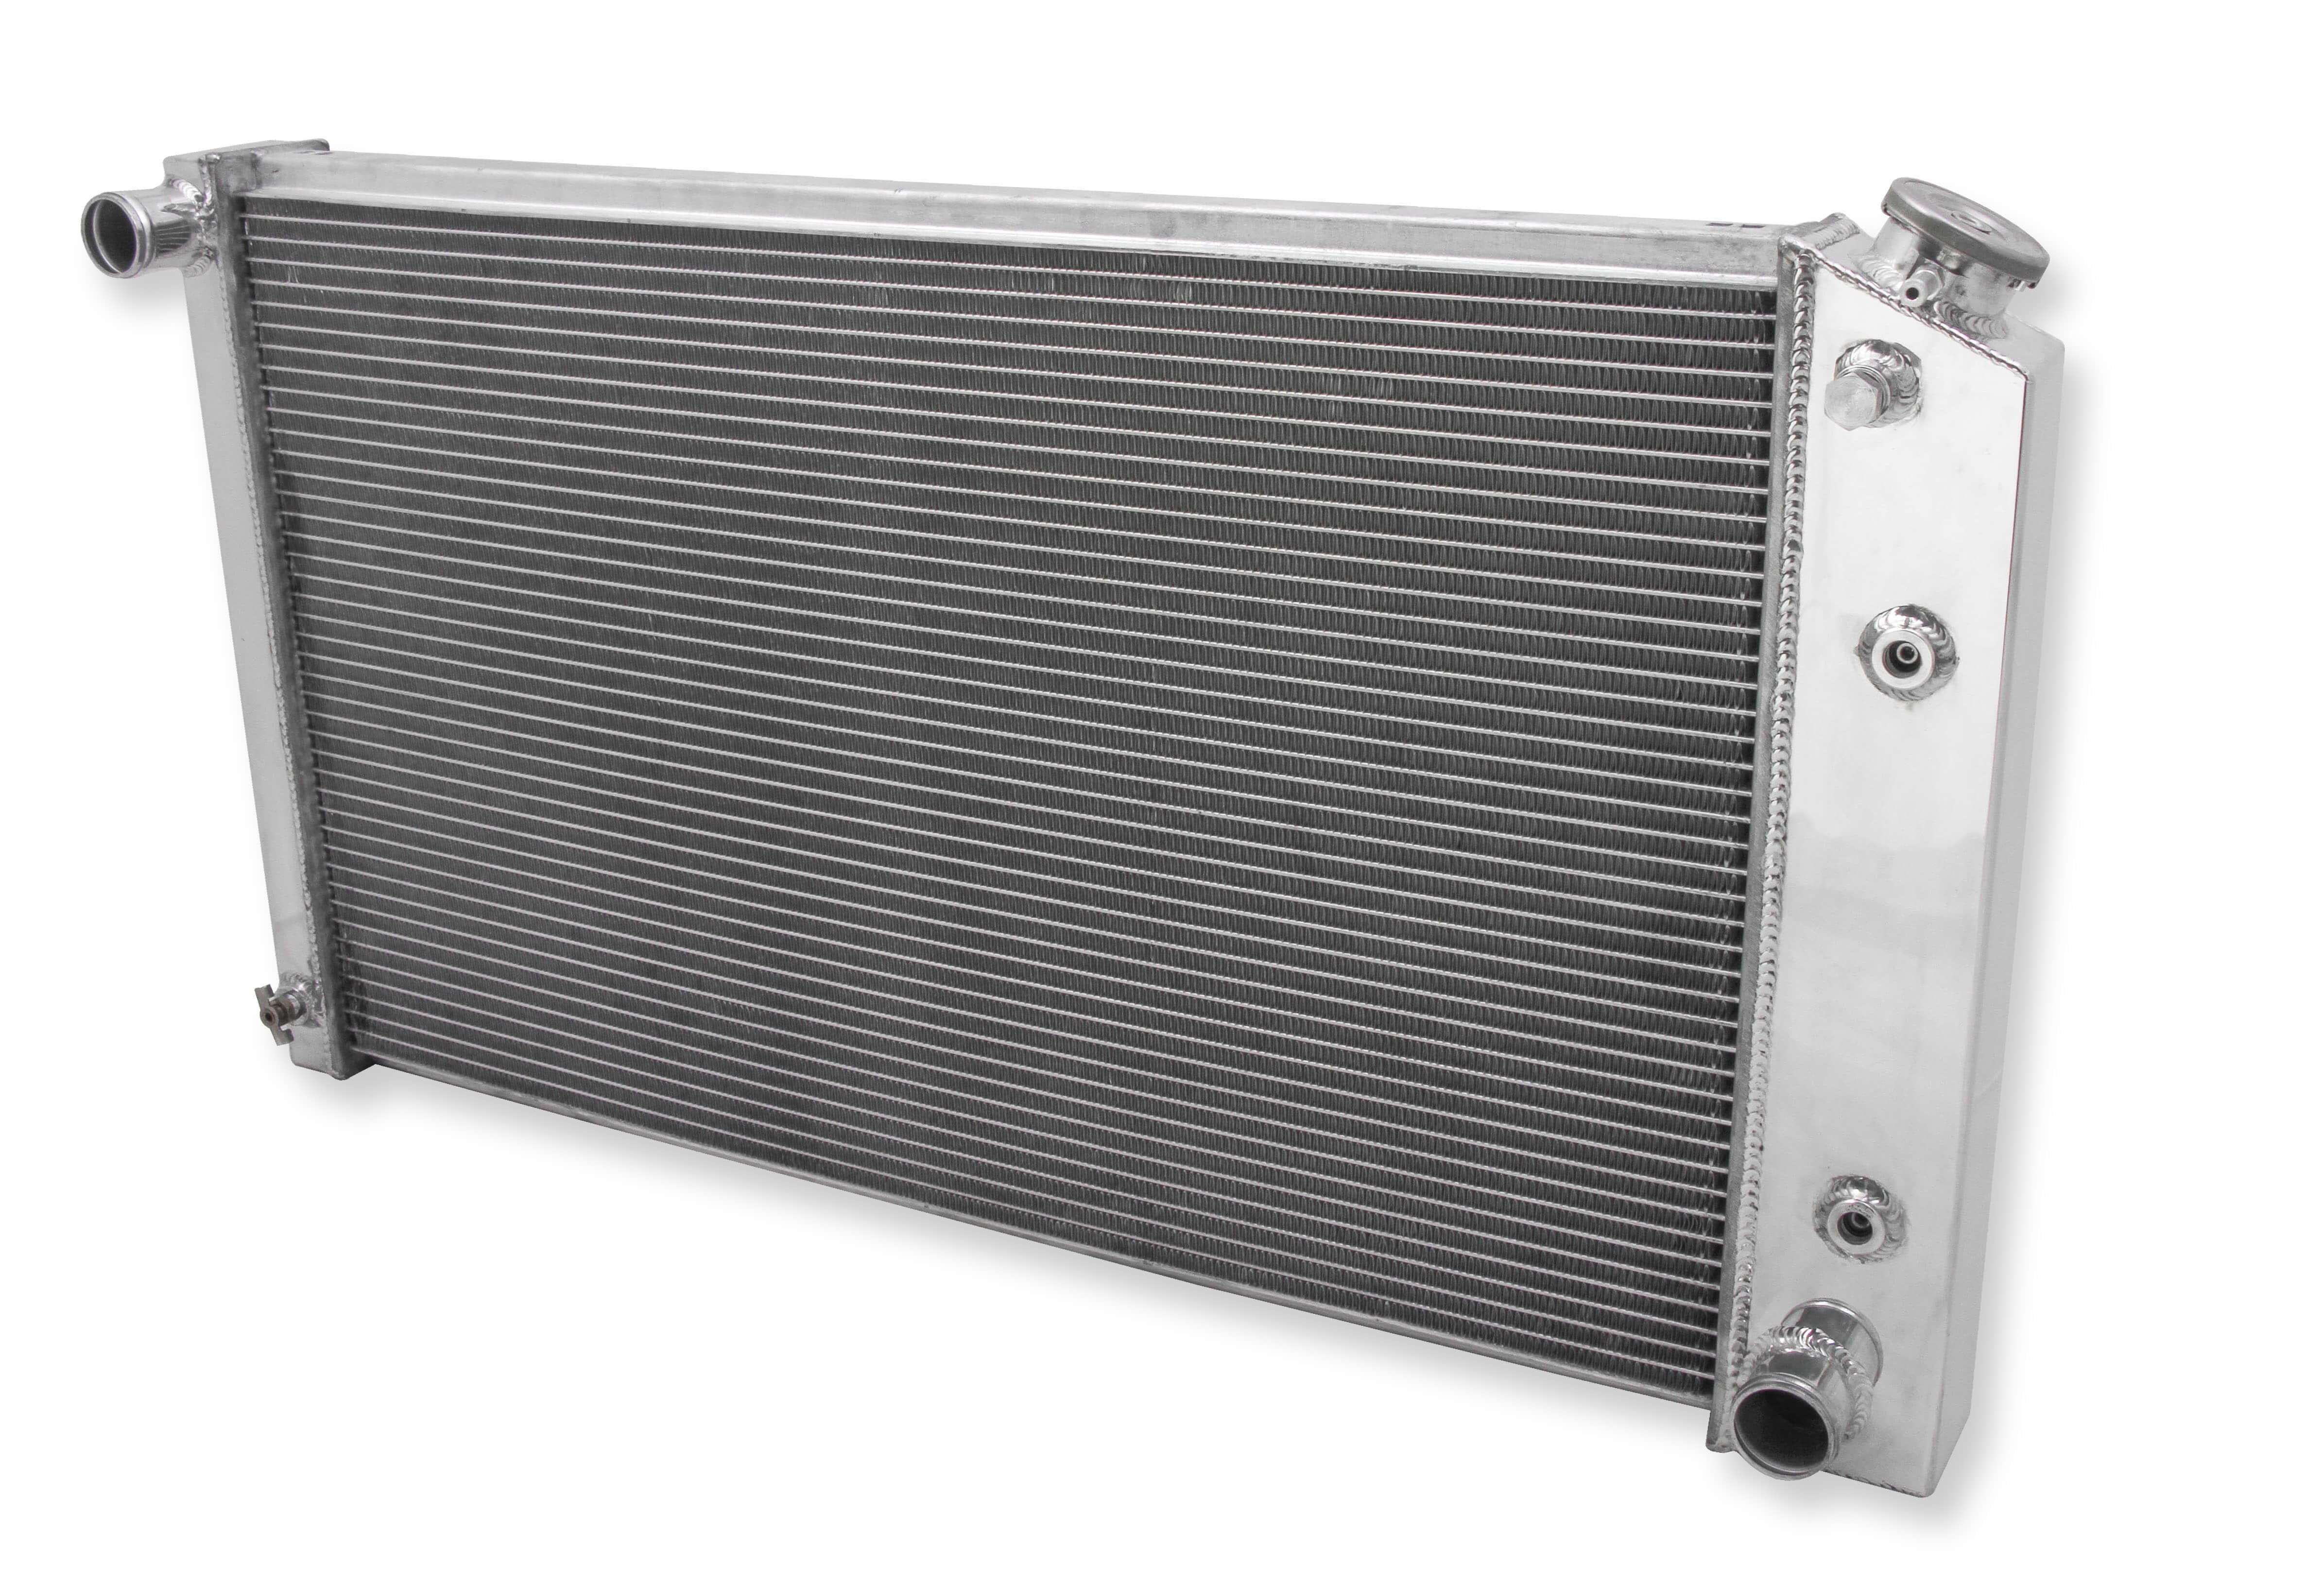 1968 1969 1970 1971 1972 1973 1974 1975-77 Grand Prix Racing 3 Row Radiator